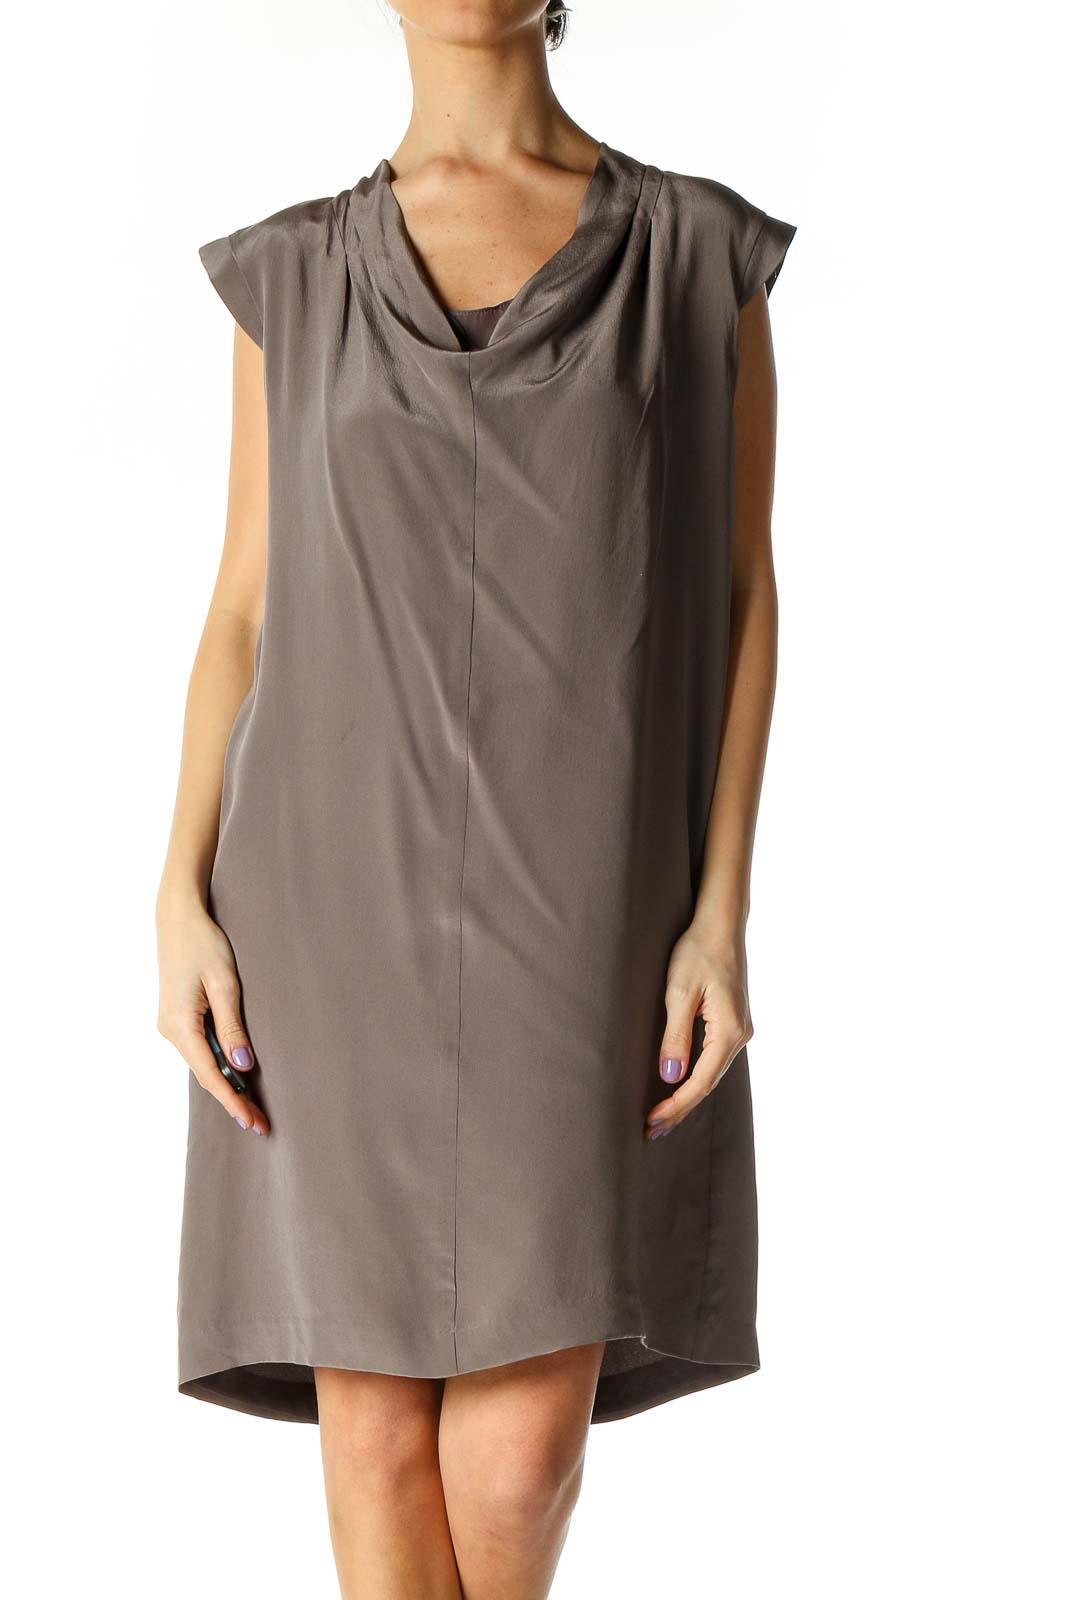 Brown Solid Casual Dress Front